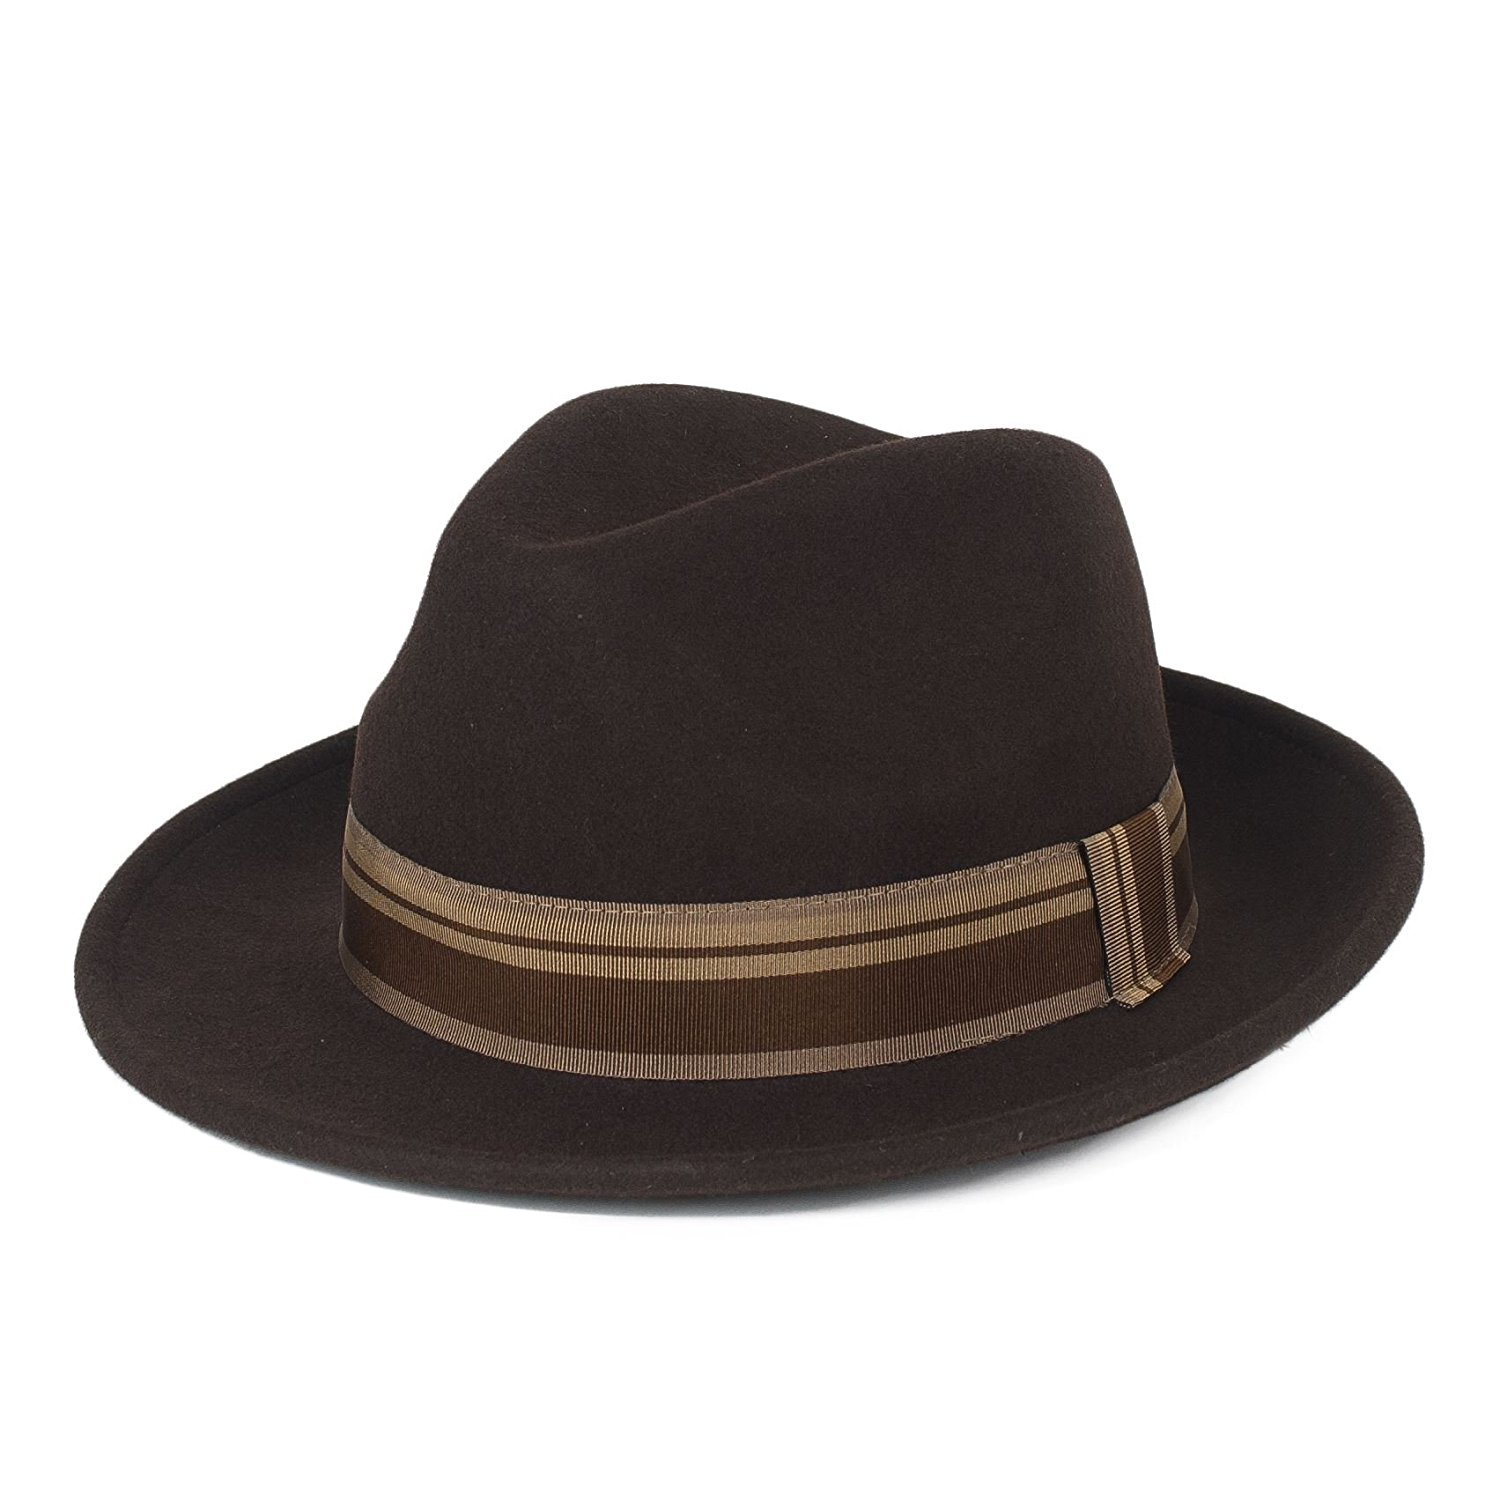 d2d Hats Mens Ladies Fedora Hat Plain Waterproof   Crushable With Multi  coloured Band (G3) at Amazon Women s Clothing store  f8d440f1335